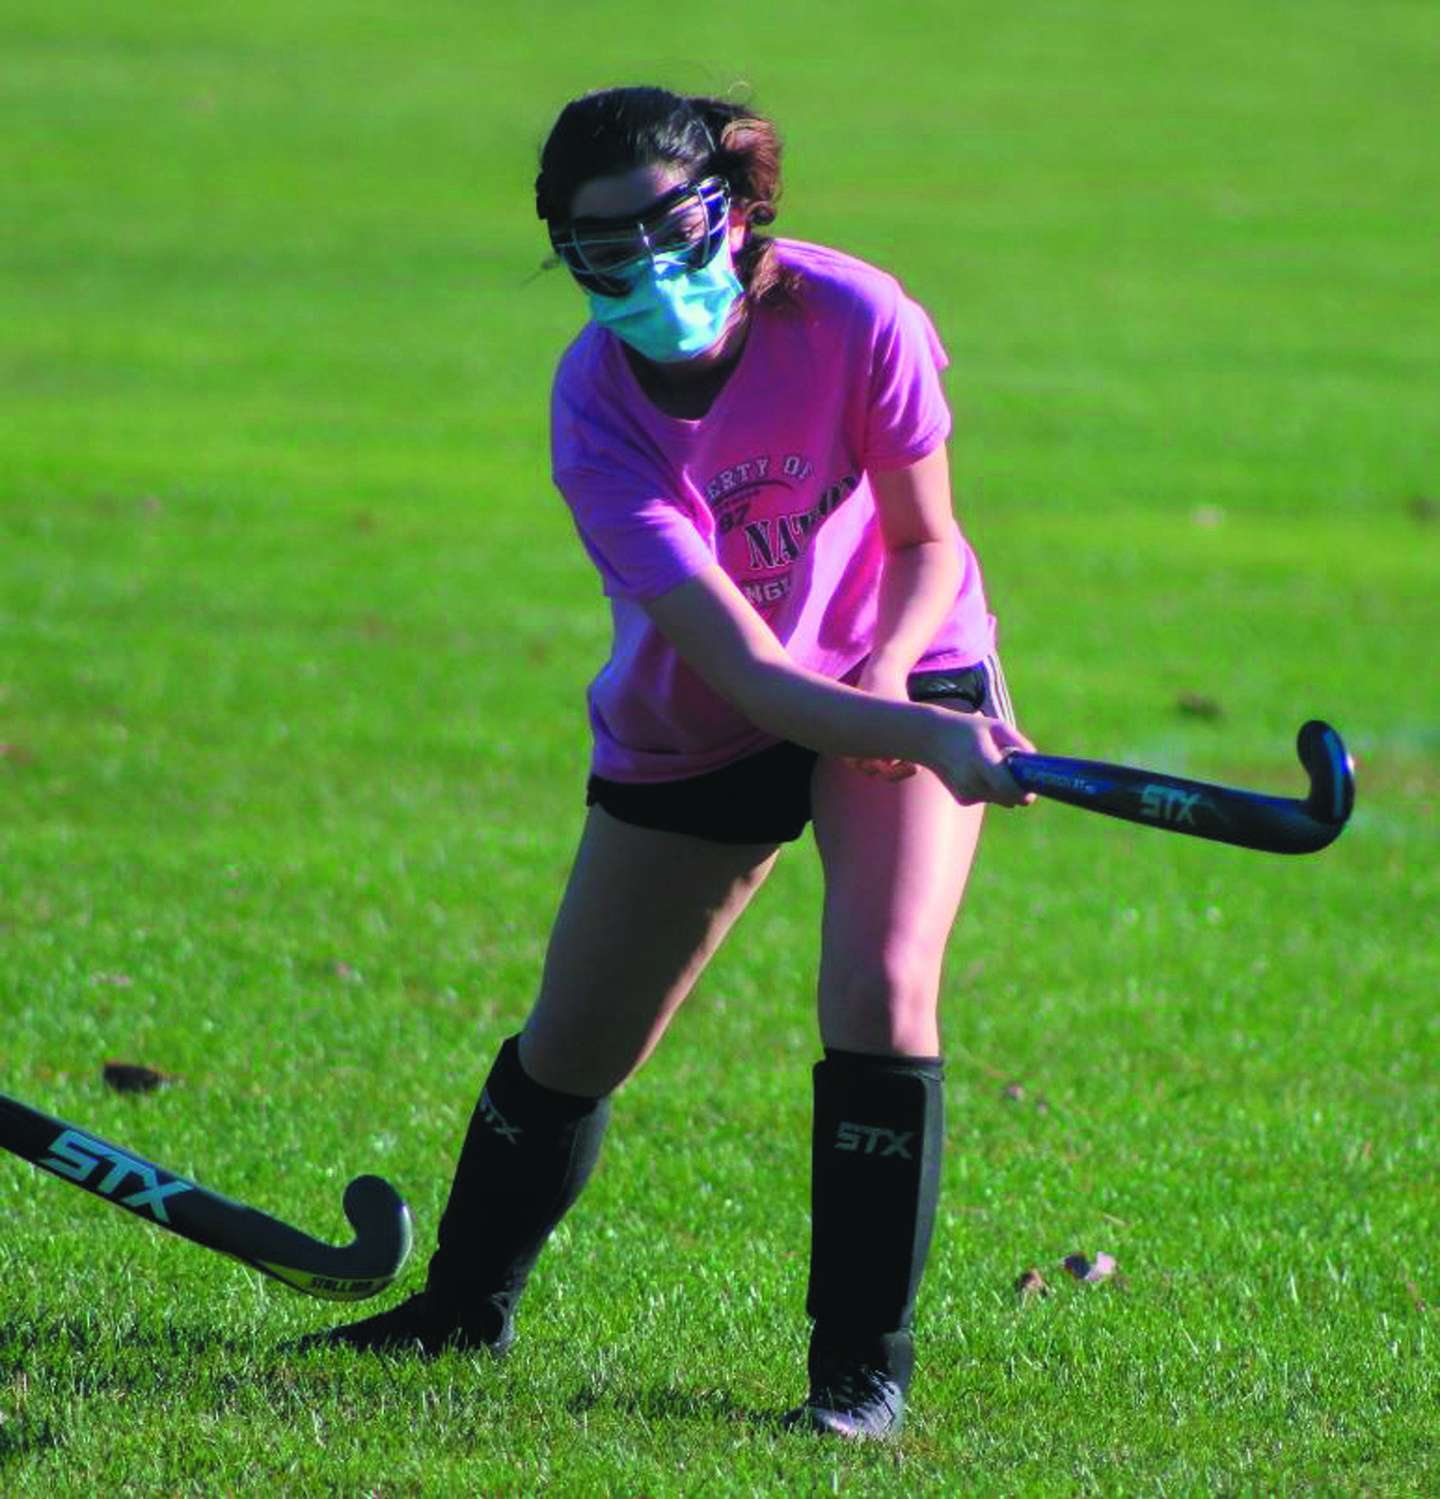 FIRE AWAY: Pilgrim's Madison Mello takes a shot at practice last week prior to the team's season opener.